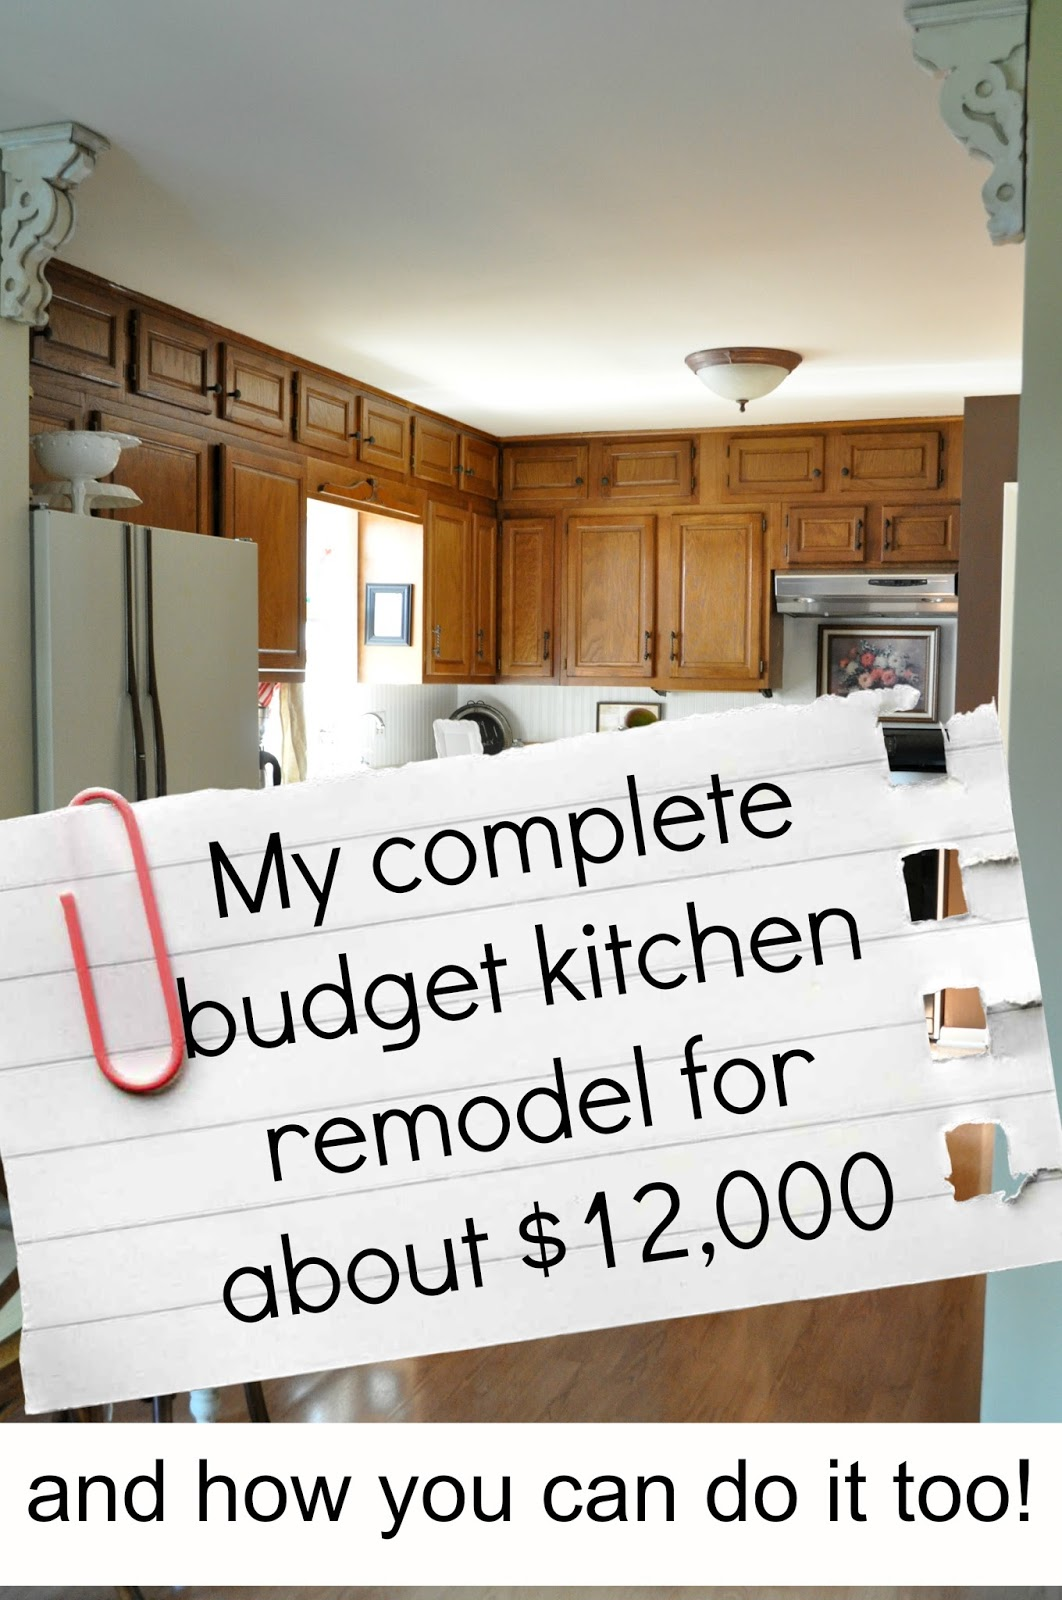 top cheap kitchen fromgentogen us affordable fine budget remodeling works inside bath on mysmn remodels remodel